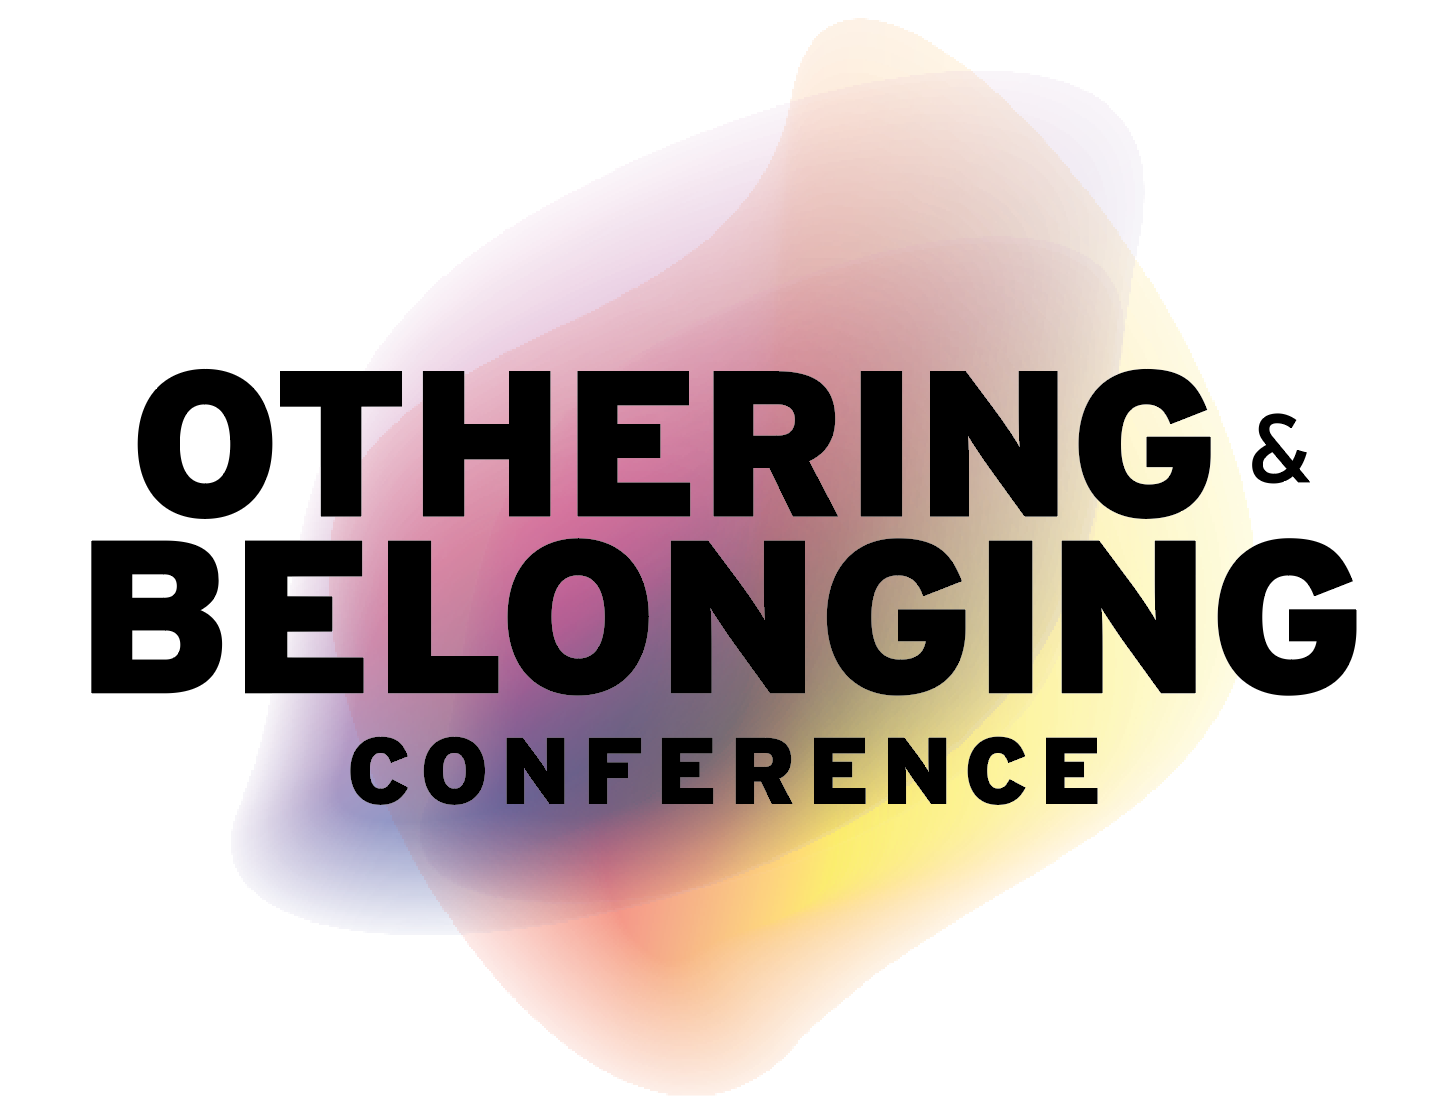 othering & belonging